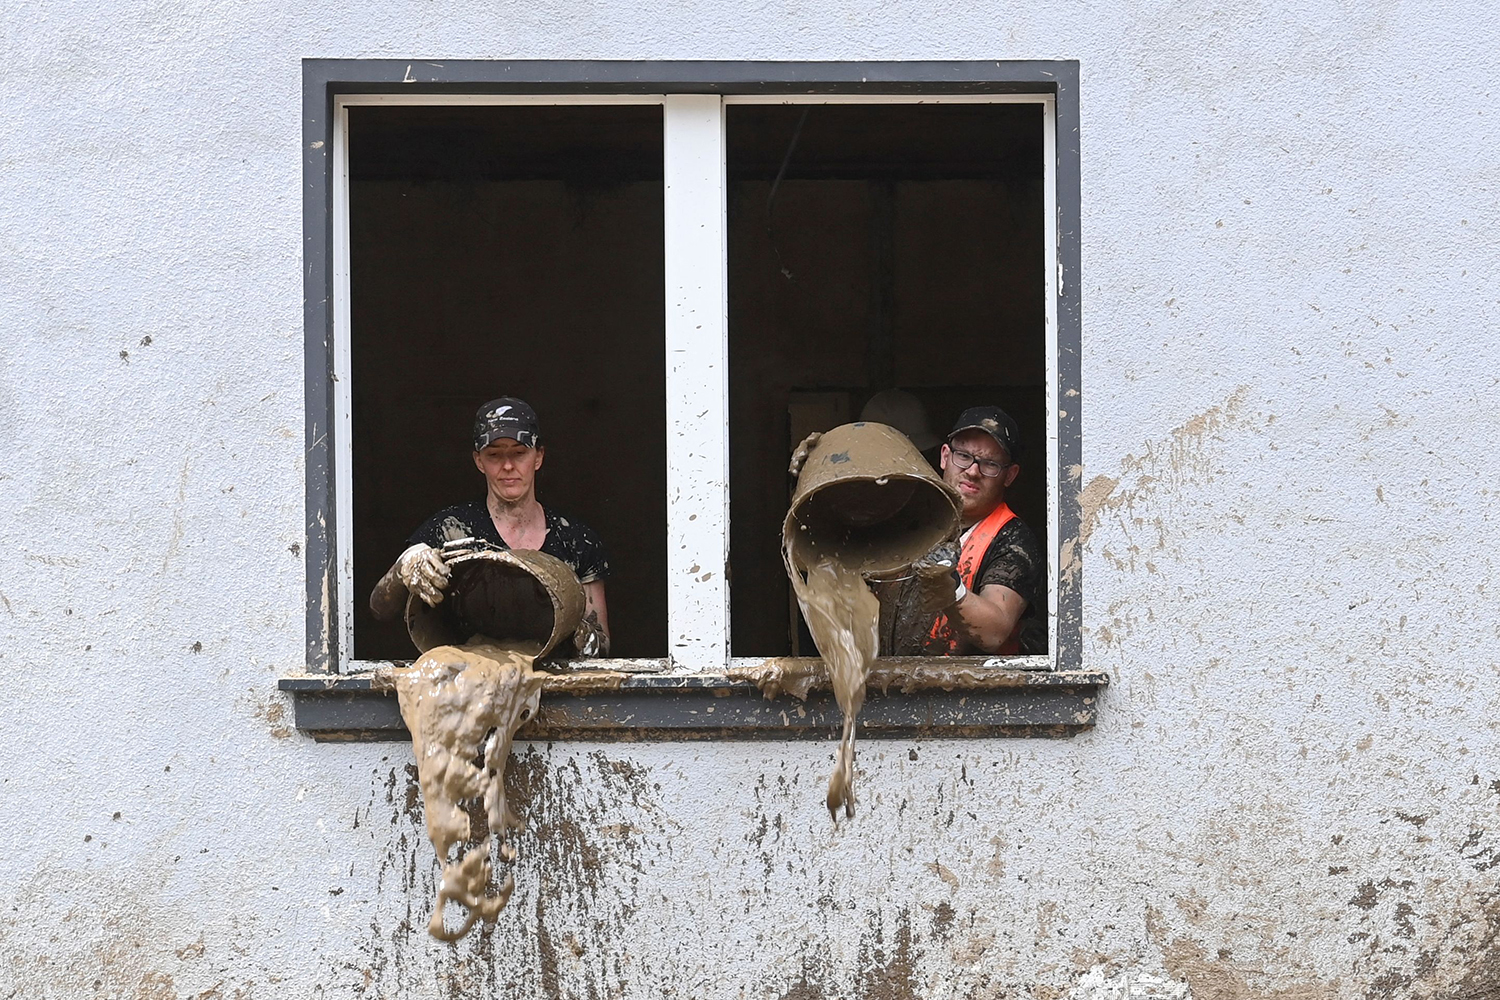 People dump out mud from house in Germany